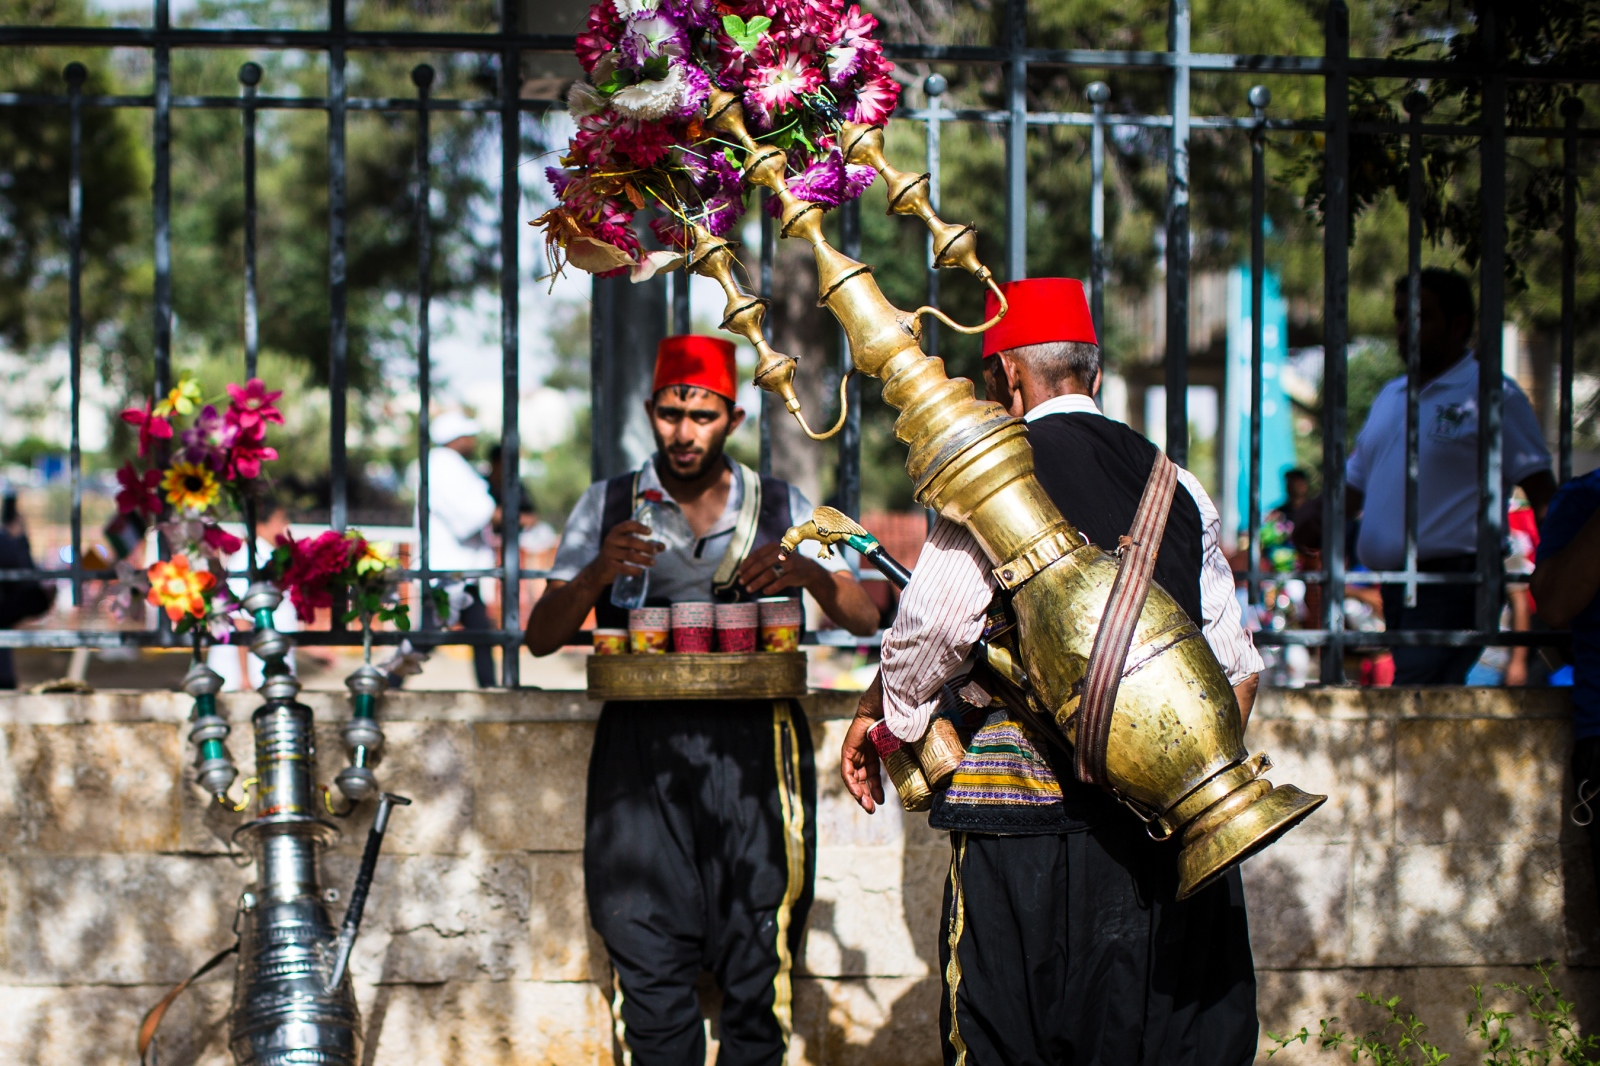 Two men selling iced hibiscus juice from a traditional gold pitcher rest in the shade to re-stock their cups. Thousands gathered at King Hussein Park in Amman, Jordan, to mark the centennial of the Great Arab Revolt on June 3, 2016.